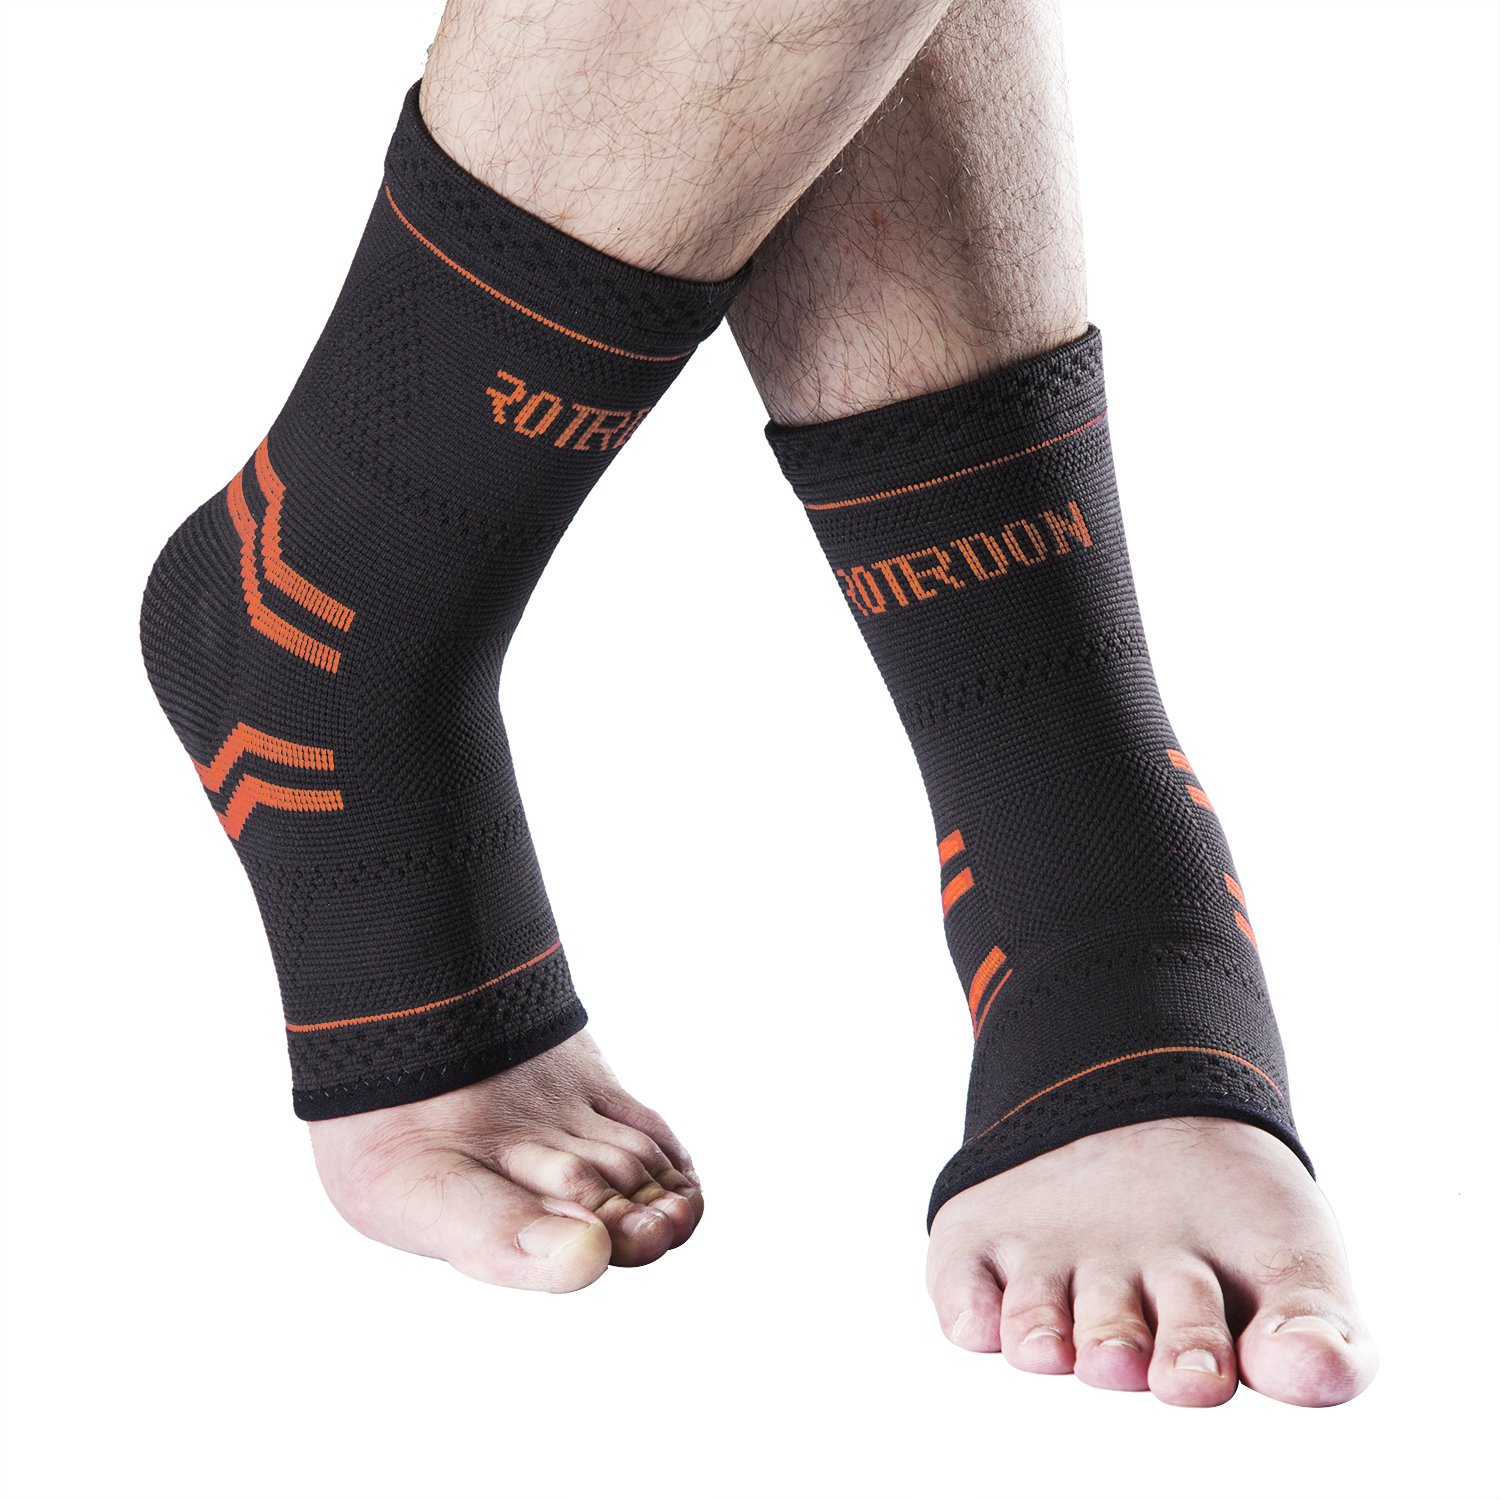 Ankle Braces Compression Support Sleeve for Injury Recovery,Joint Pain Sport Activity Etc.Plantar Fasciitis Foot Socks with Arch Support,Eases Swelling,Heel Spurs,Achilles Tendon Roterdon(Orange,XL)